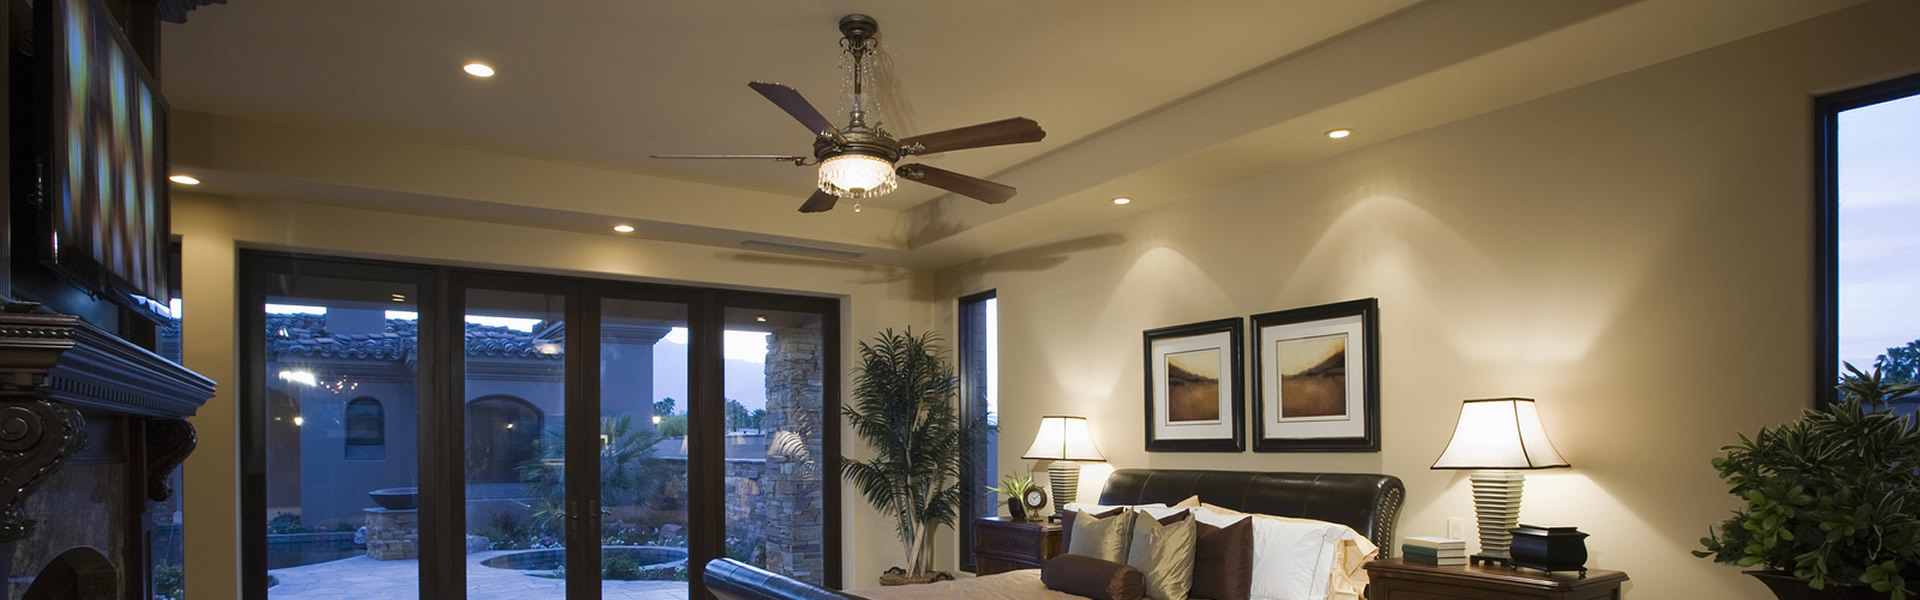 Ceiling fan installation lawrenceville exhaust fan repair ceiling fan installation in lawrenceville mozeypictures Images